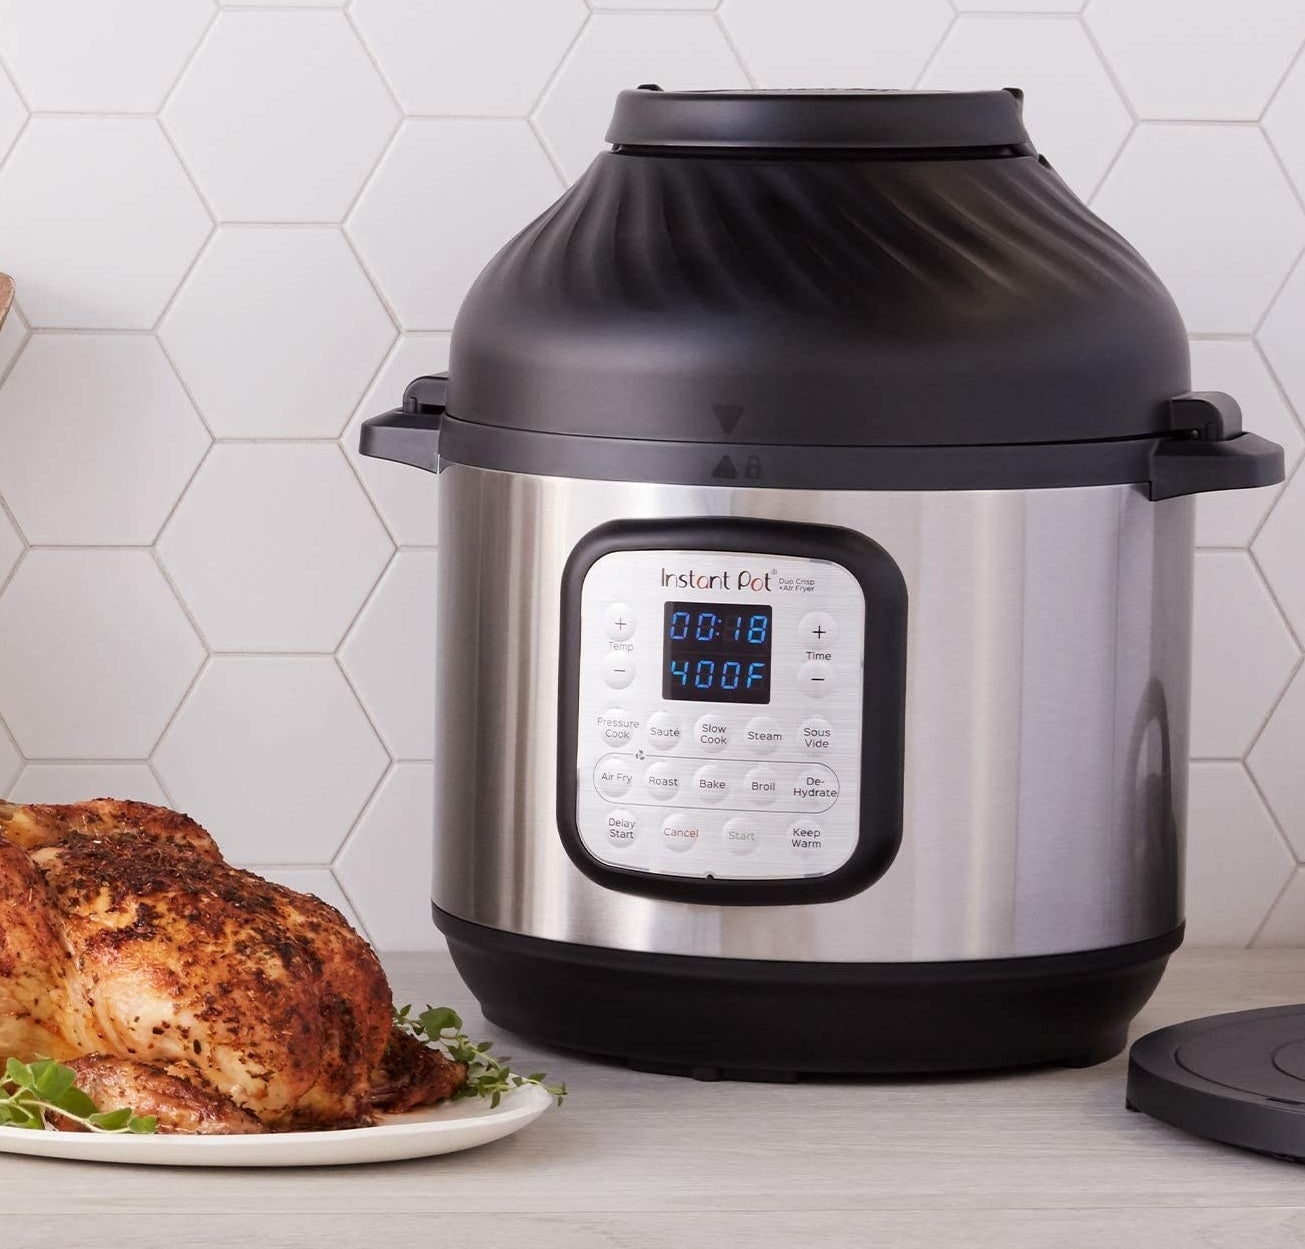 An InstantPot next to a cooked chicken